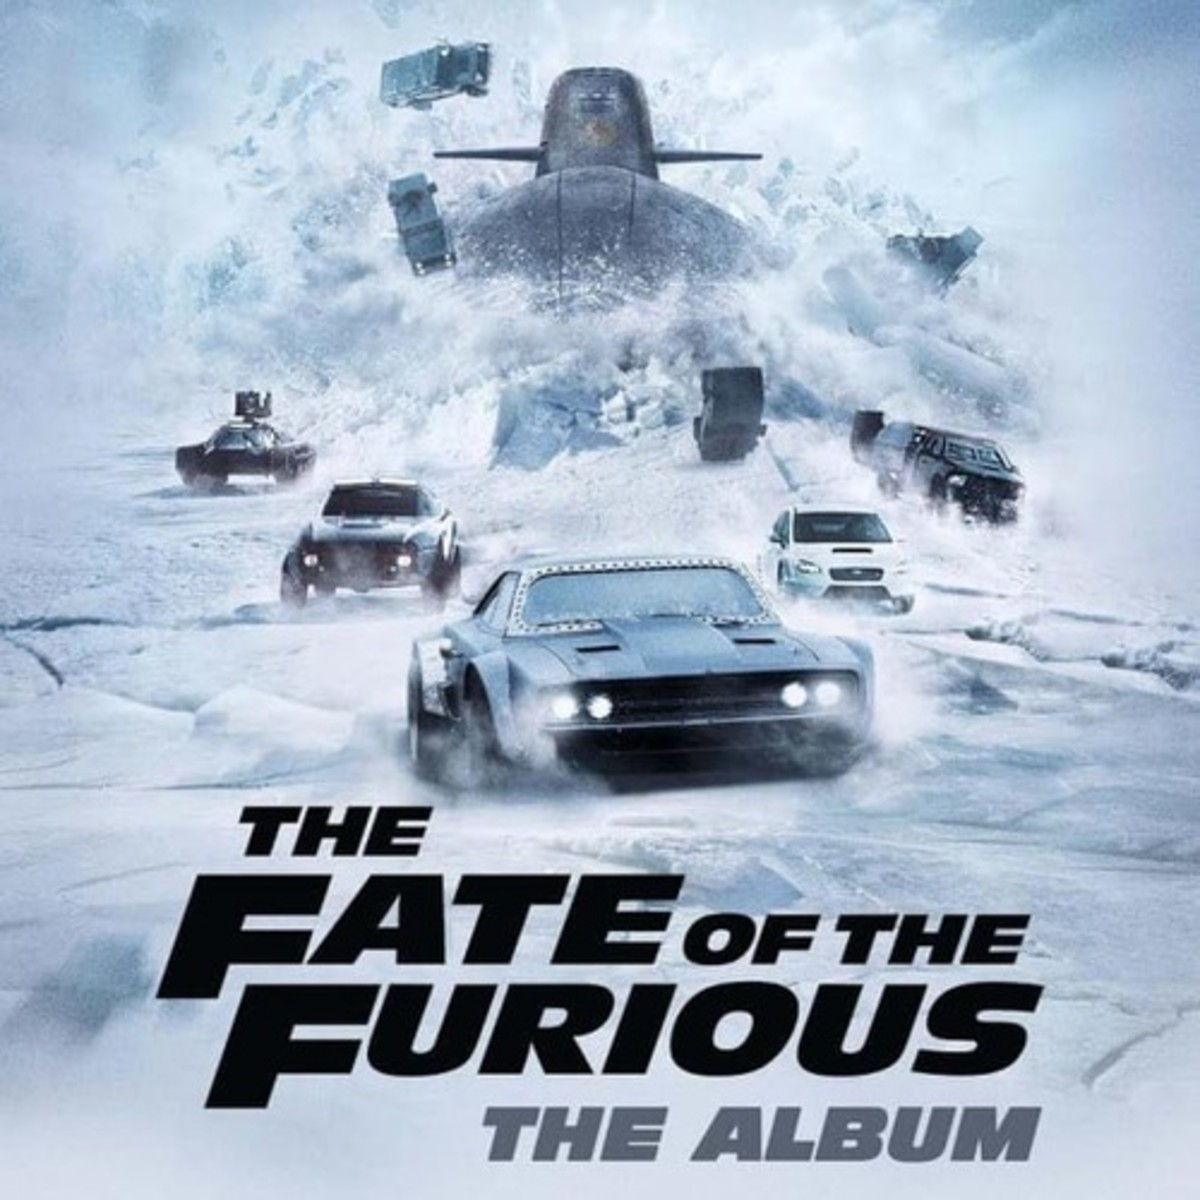 the-fate-of-the-furious-the-album.jpeg